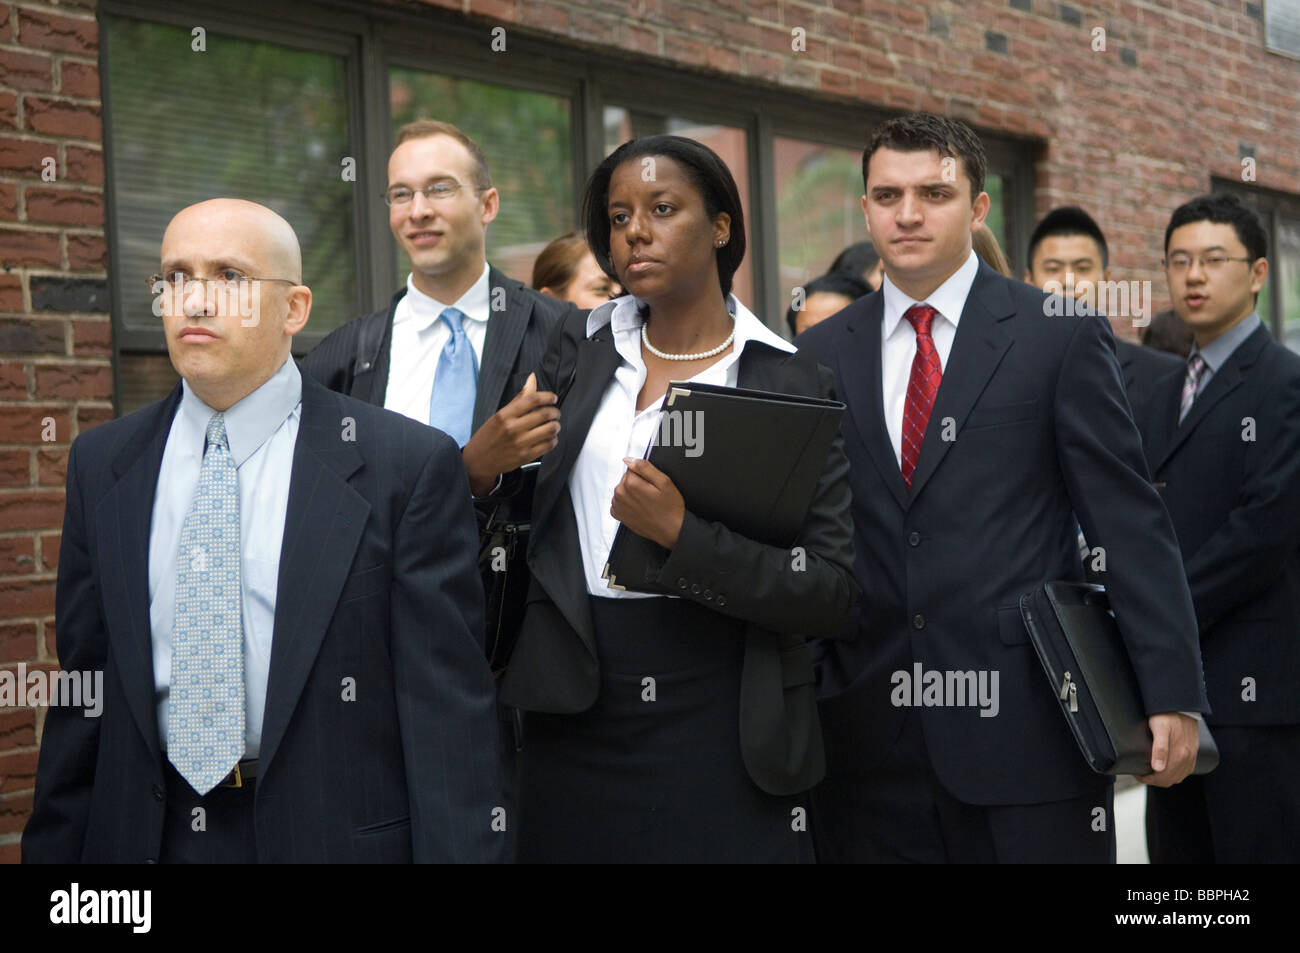 Job seekers attend the MyWorkster Multi School Alumni Job Fair at Baruch College in New York - Stock Image